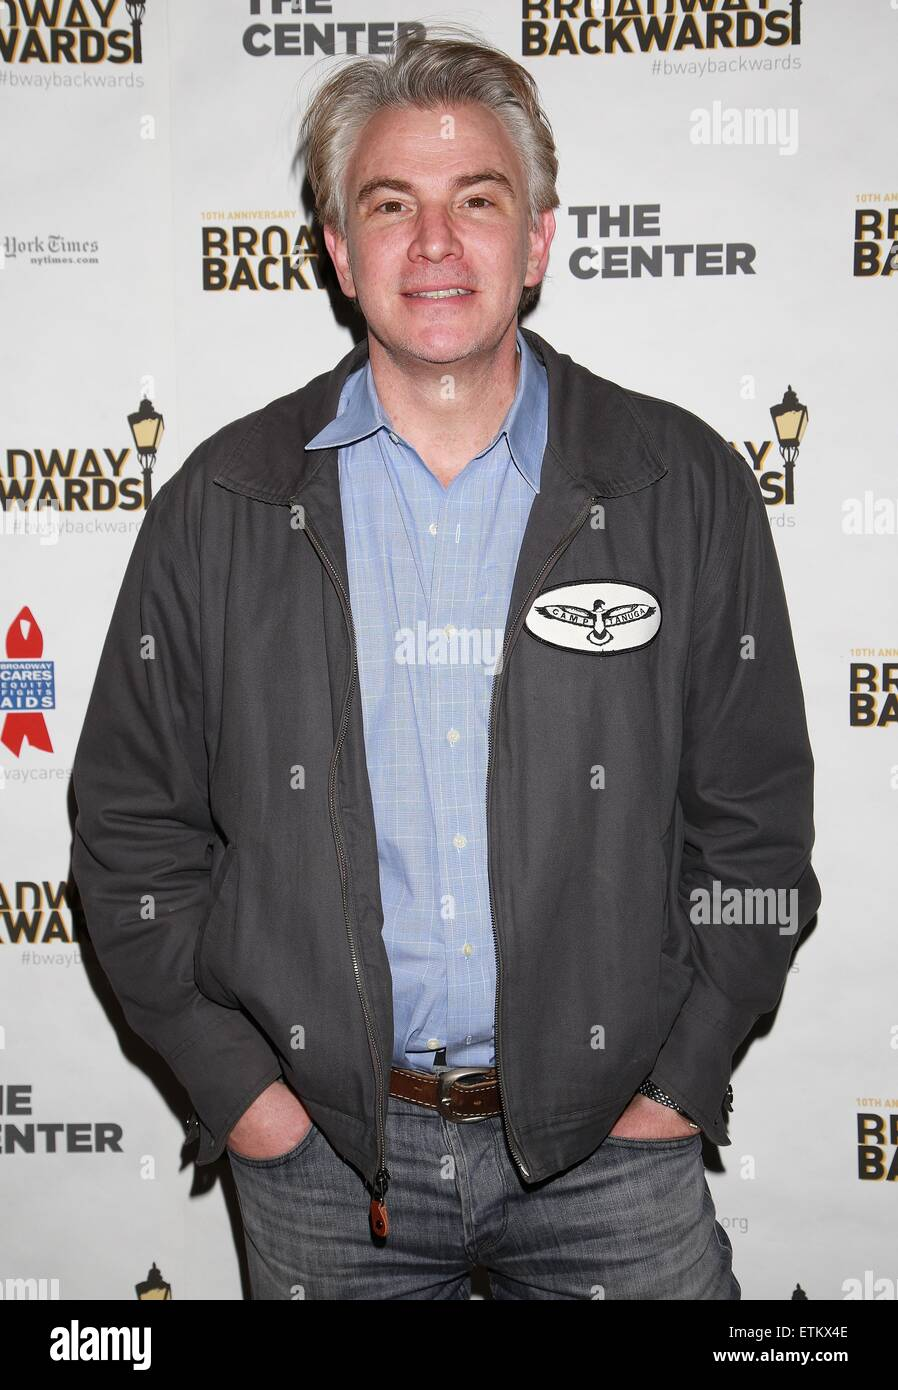 After party for 10th Annual Broadway Backwards held at John's Pizzeria - Arrivals.  Featuring: Douglas Sills - Stock Image